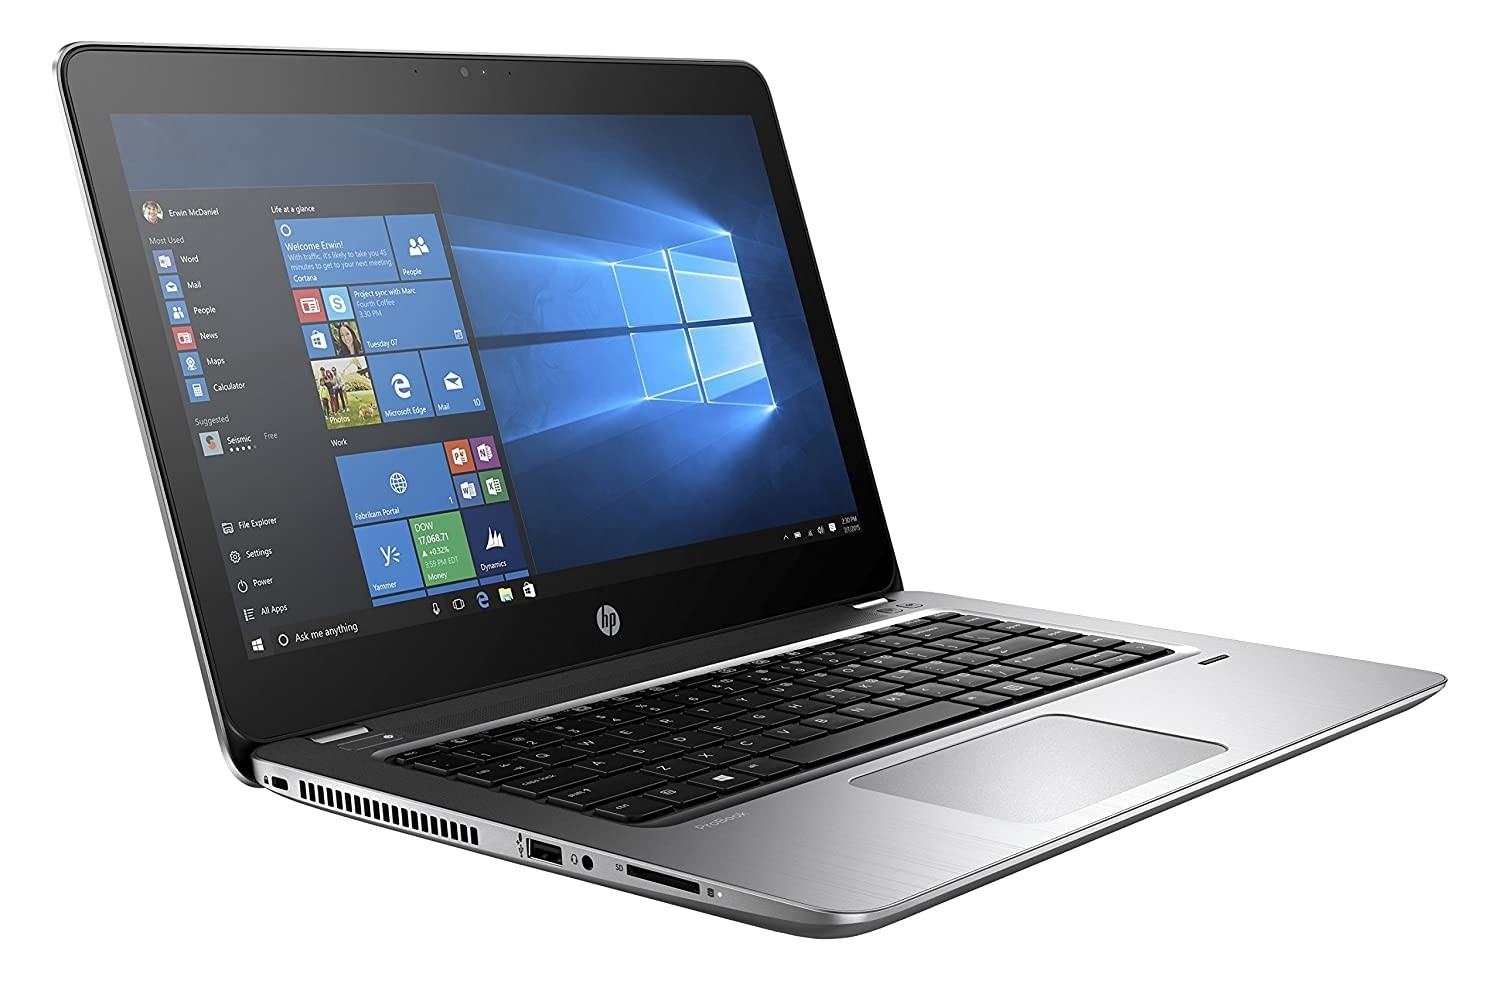 Refurbished laptops & desktops - Refurbished HP Probook 440 G4 (Core I3 7TH Gen/4GB/500GB/Webcam/14''/DOS)